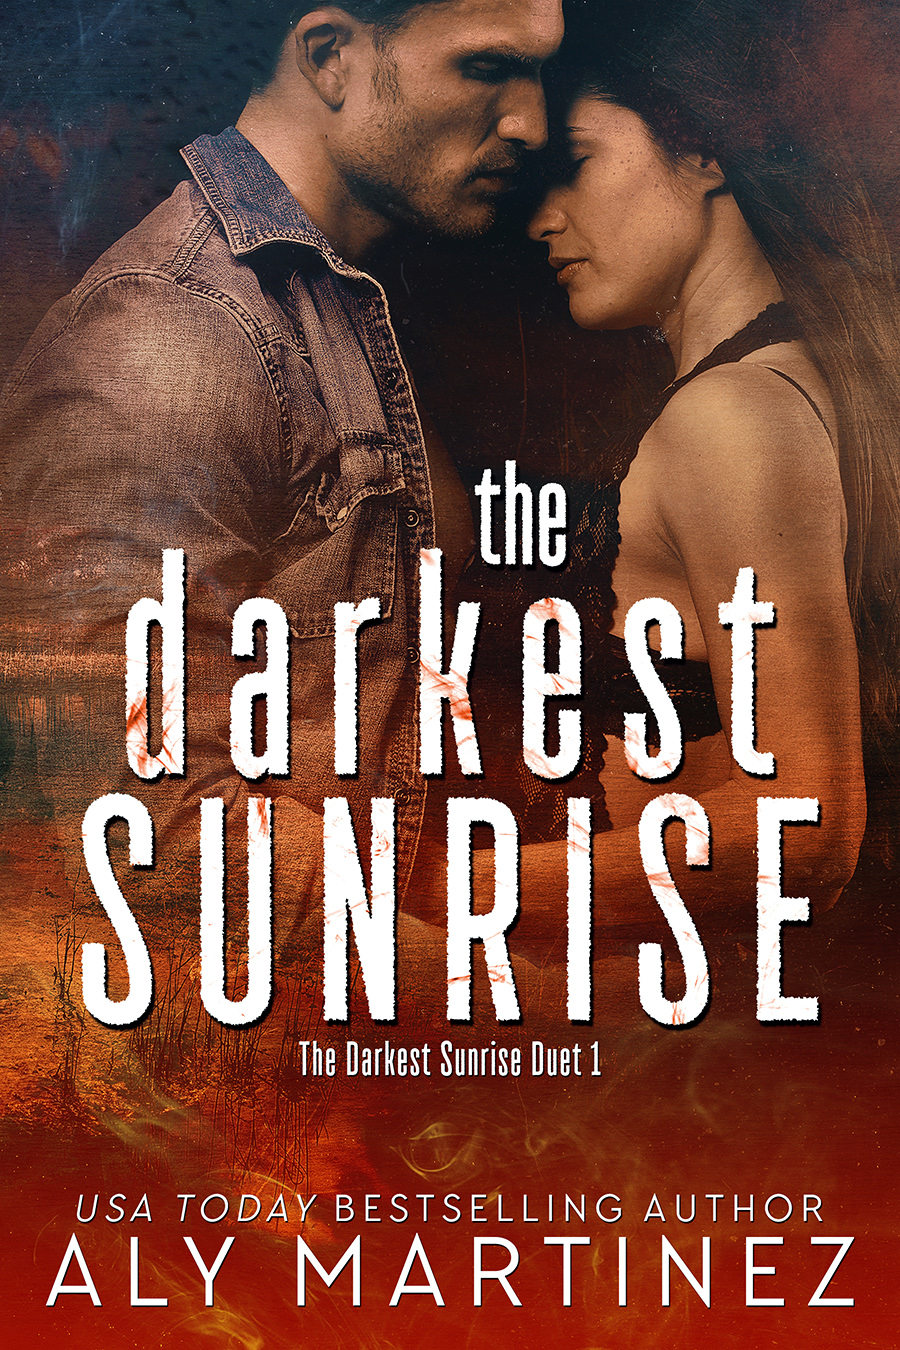 The Darkest Sunrise (The Darkest Sunrise, #1) by Aly Martinez